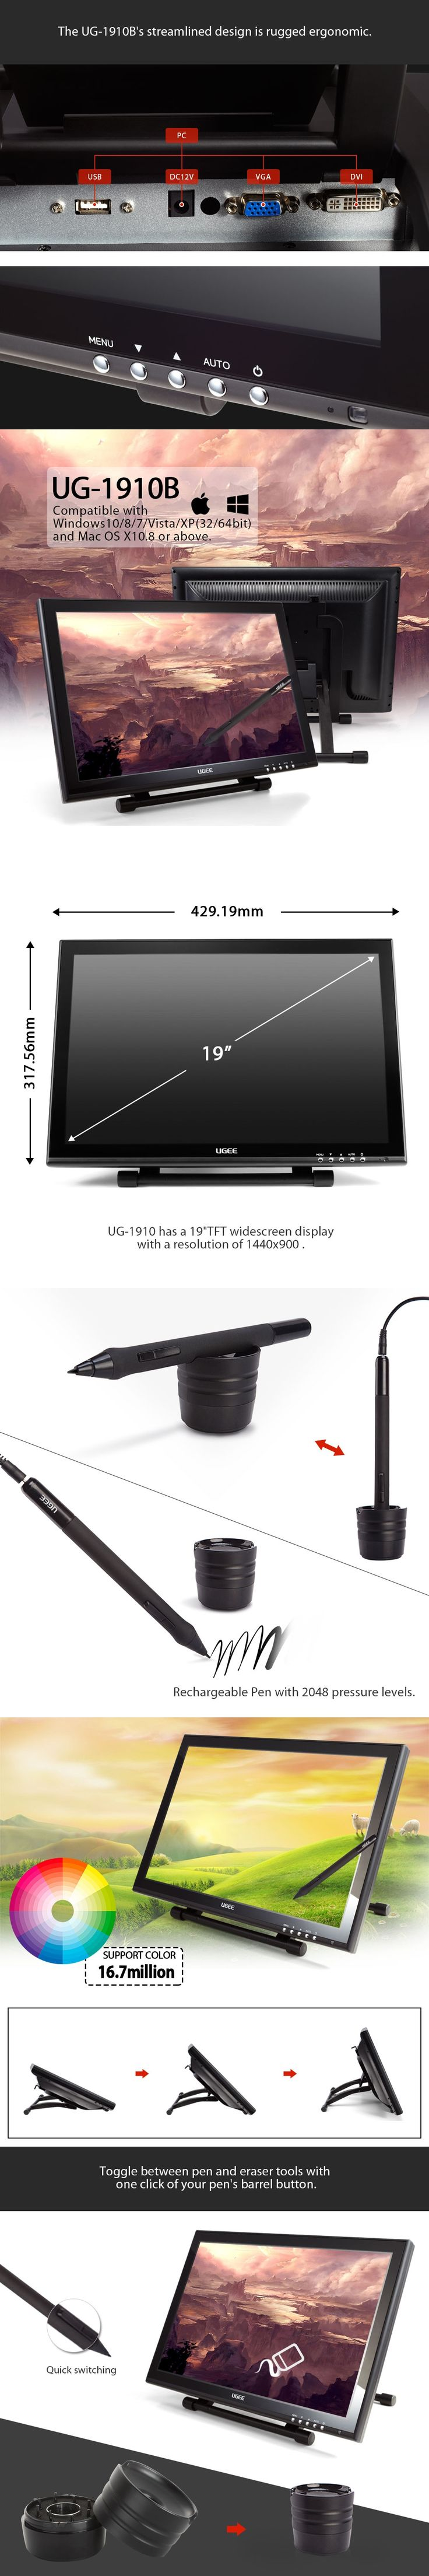 "UGEE 1910B 19"" Graphics Drawing Tablet Screen Monitor Graphics Pen LCD IPS Drawing Monitor Digital Drawing Pen Display"